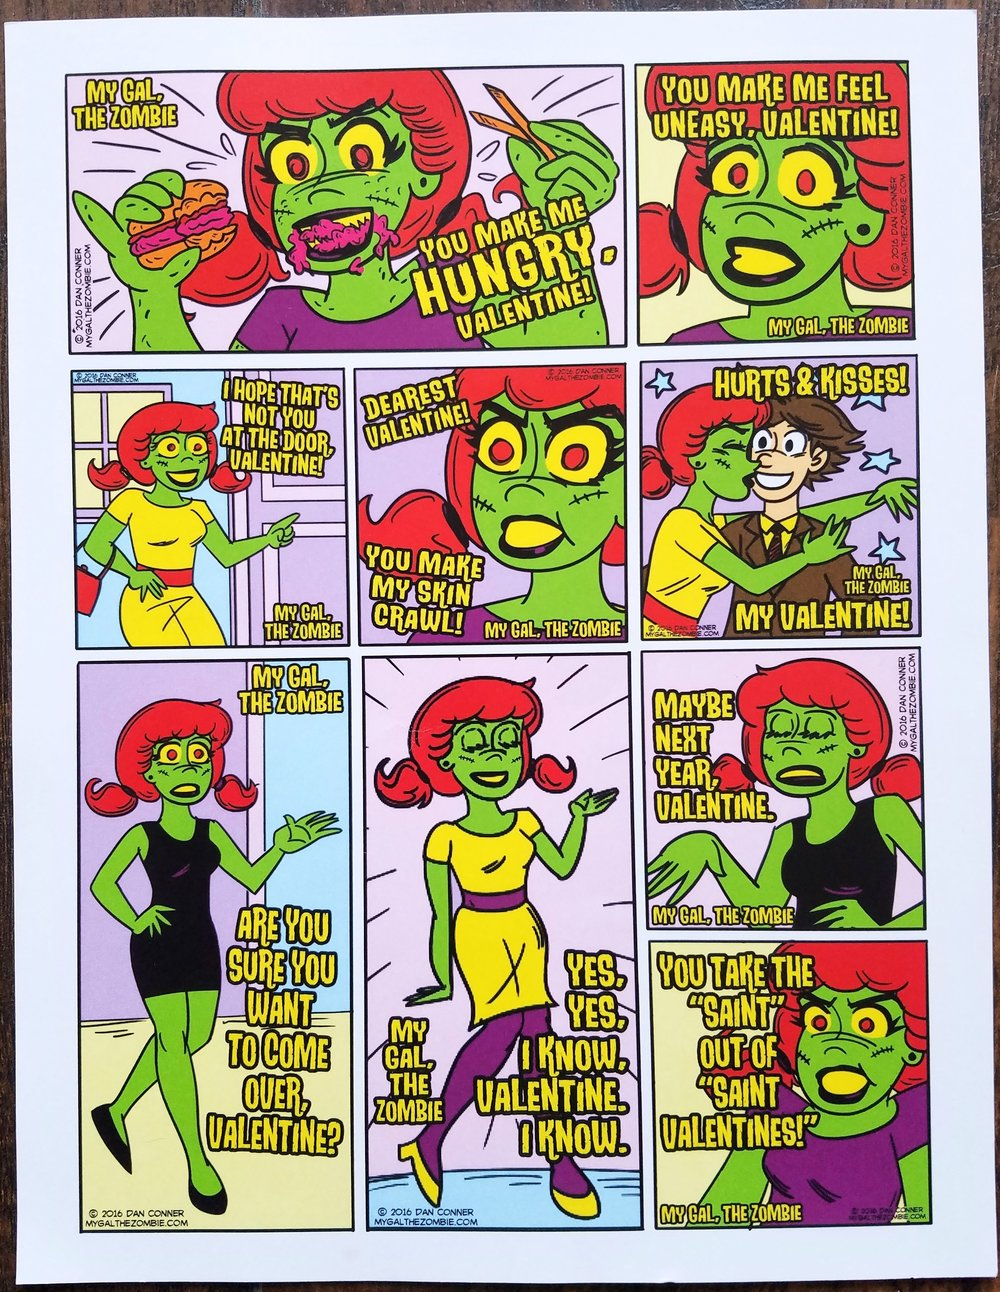 A page of  My Gal the Zombie  cards for Valentine's Day.